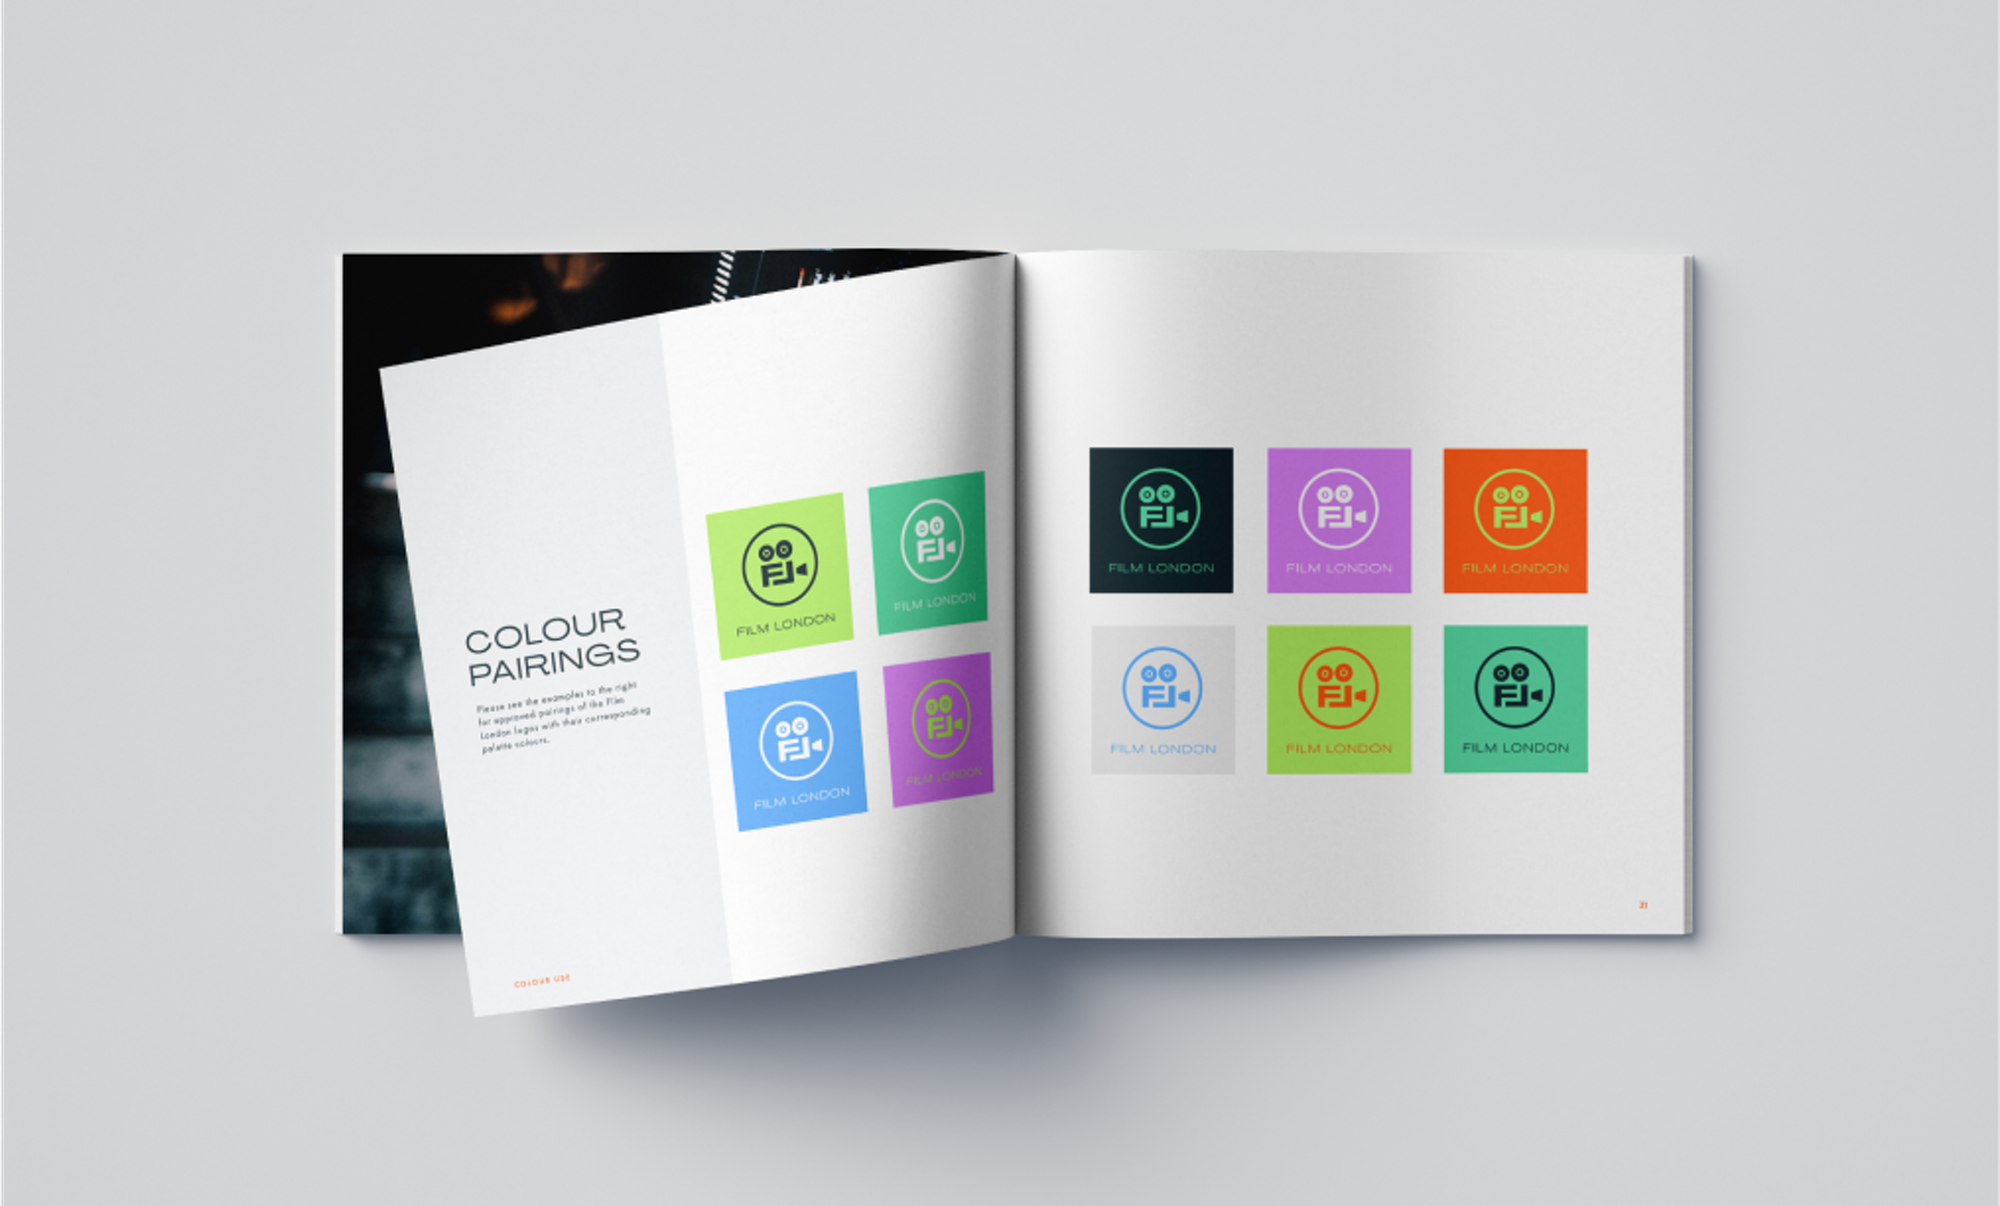 Style guide book open to logo colour pairings